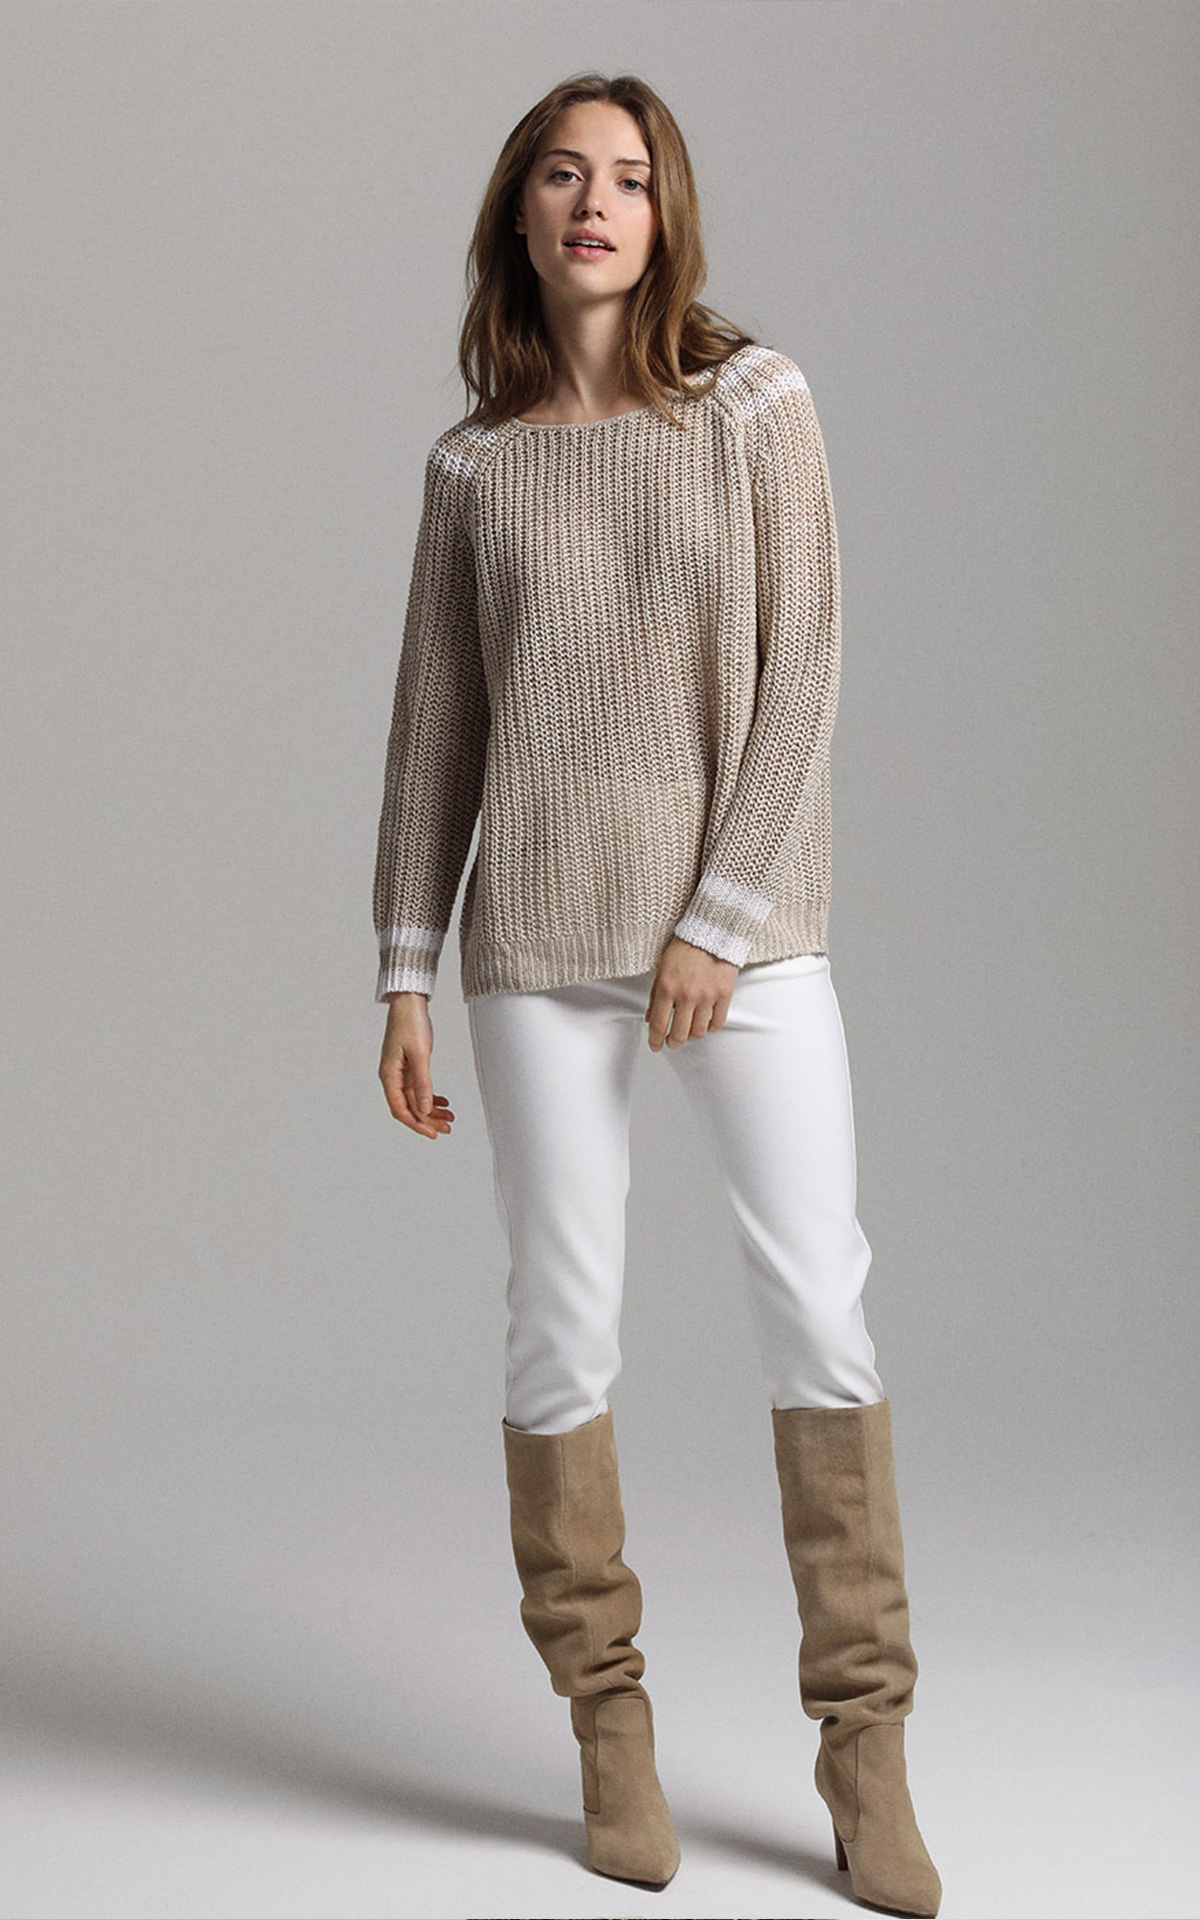 La Vallée Village Apostrophe line sweater